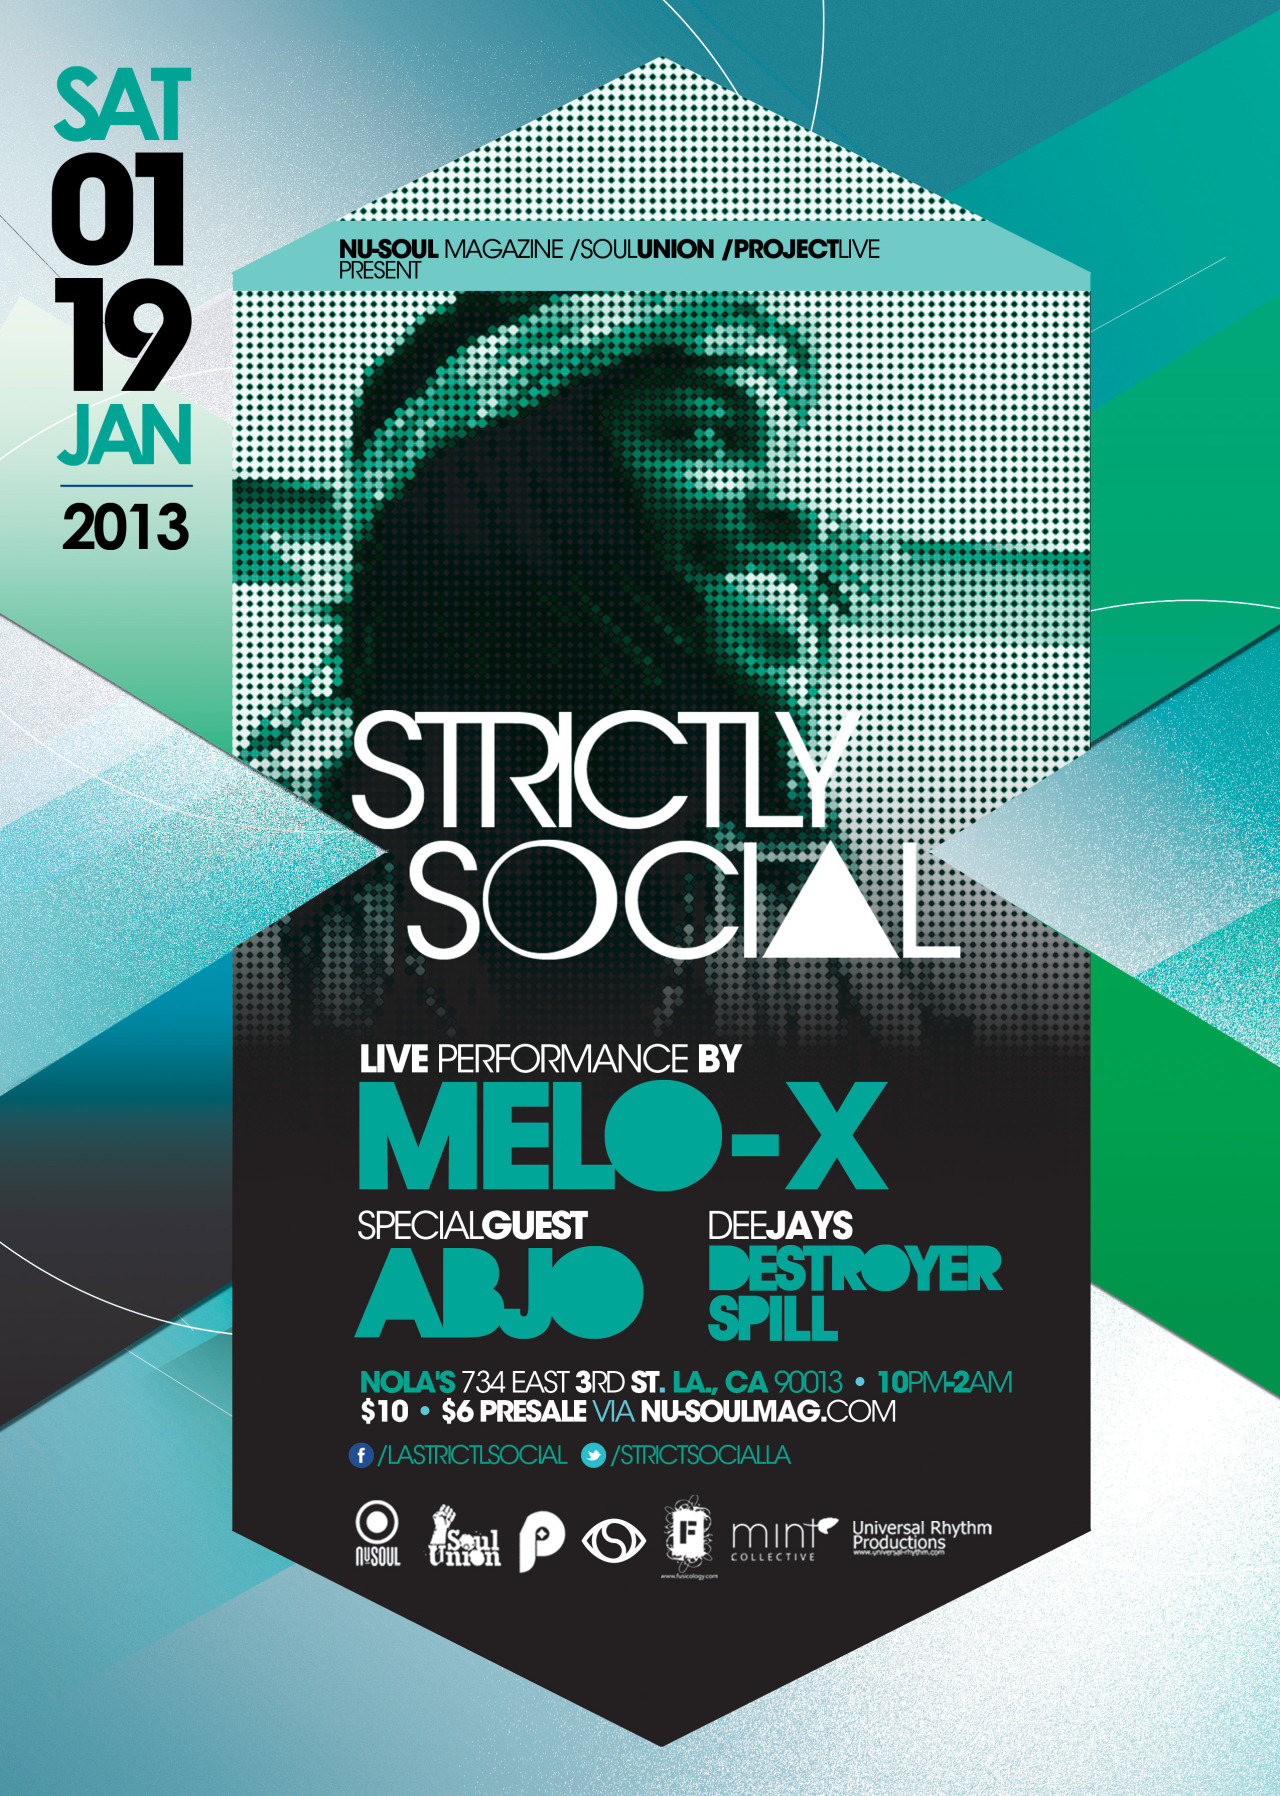 meloxtra: MELO-X PERFORMING LIVE IN LOS ANGELES, CALIFORNIA JAN 19th!!!! PURCHASE YOUR TICKET NOW - It's The God, God.